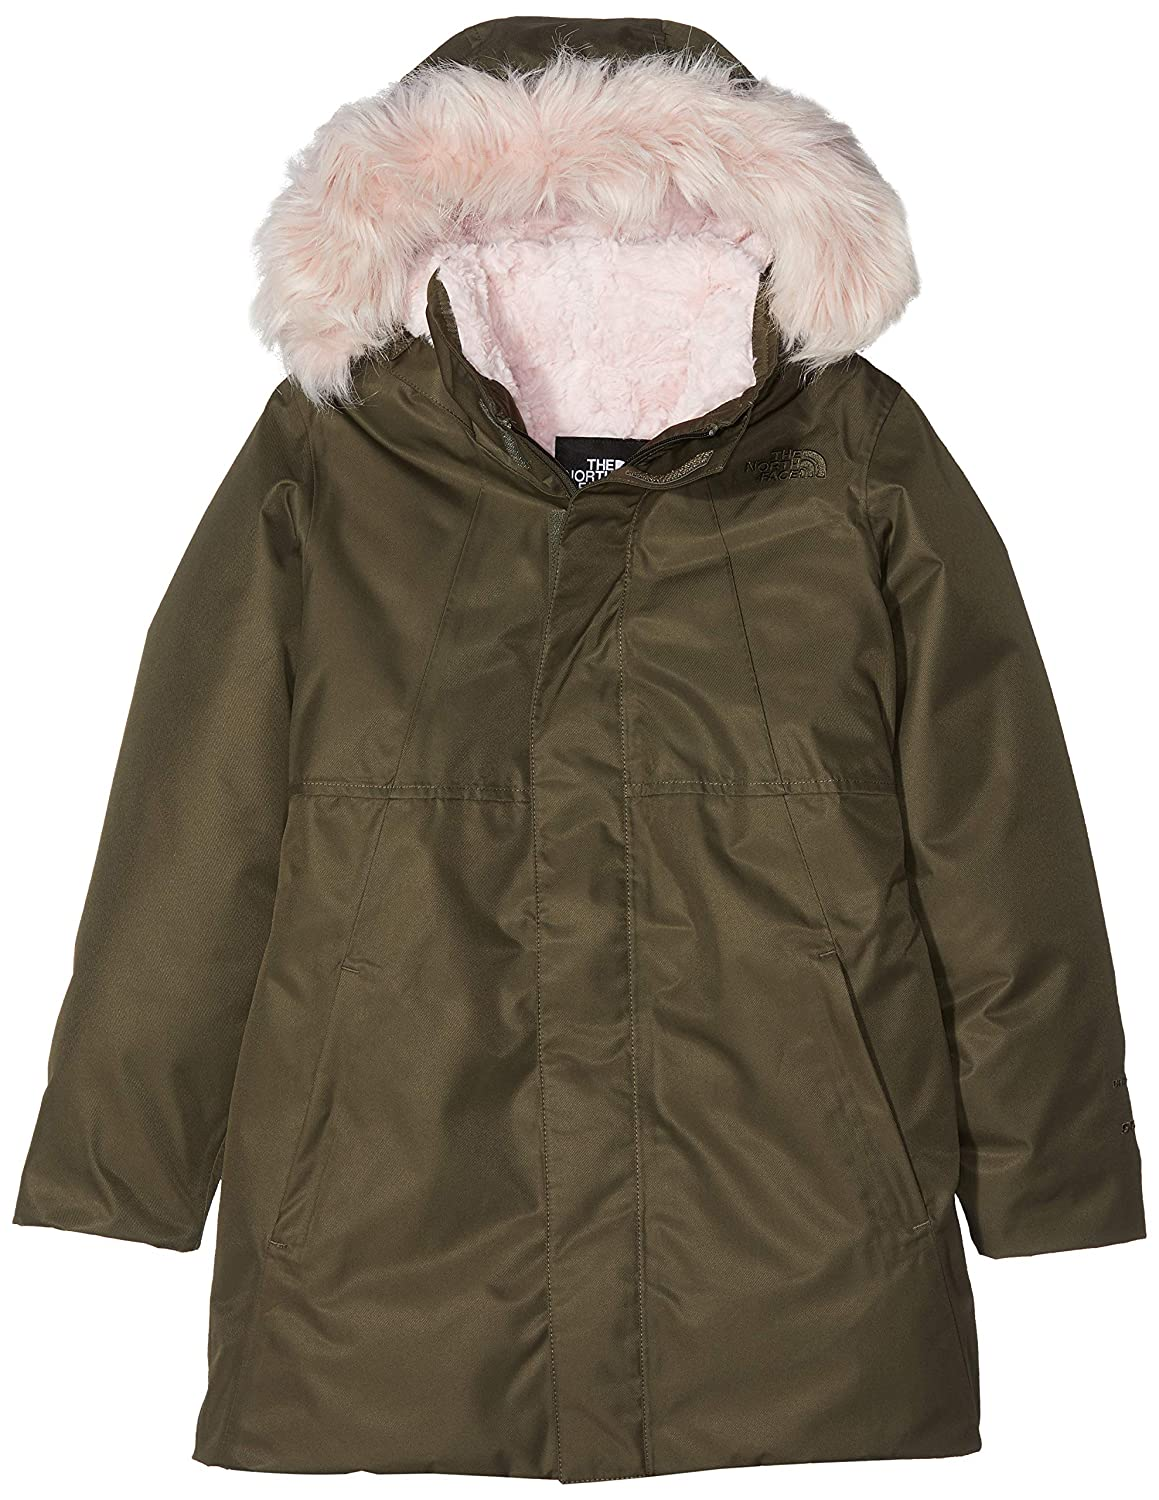 The North Face, G Arctic S Down Jkt, Giacca, Bambina